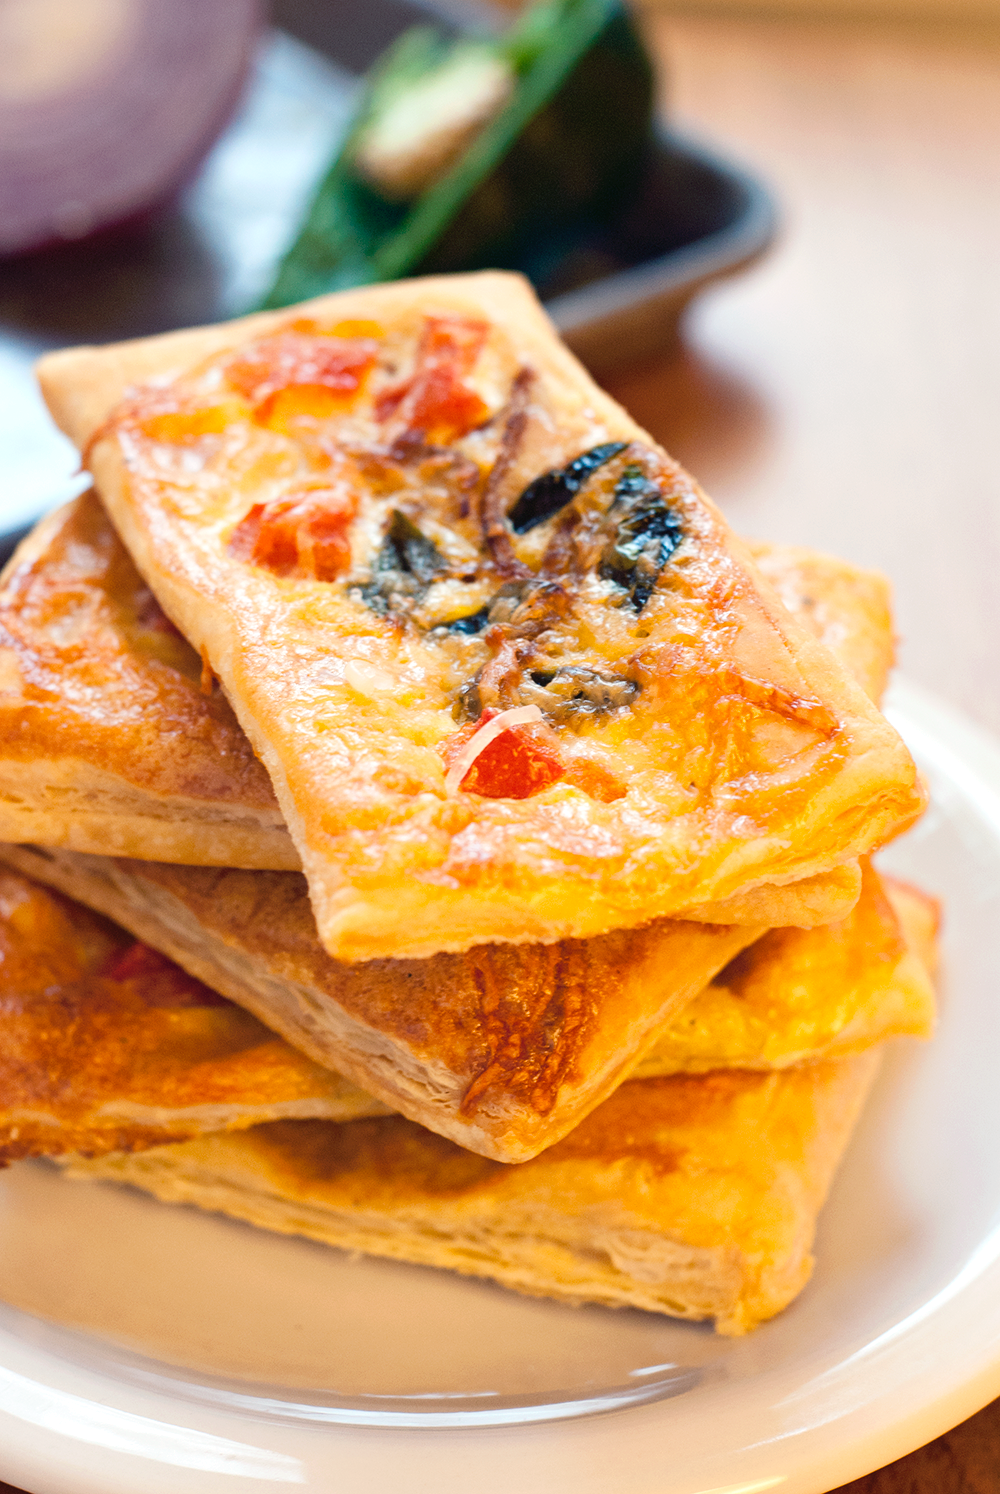 Start your morning off right with an amazingly delicious and flavorful easy breakfast tartlet!